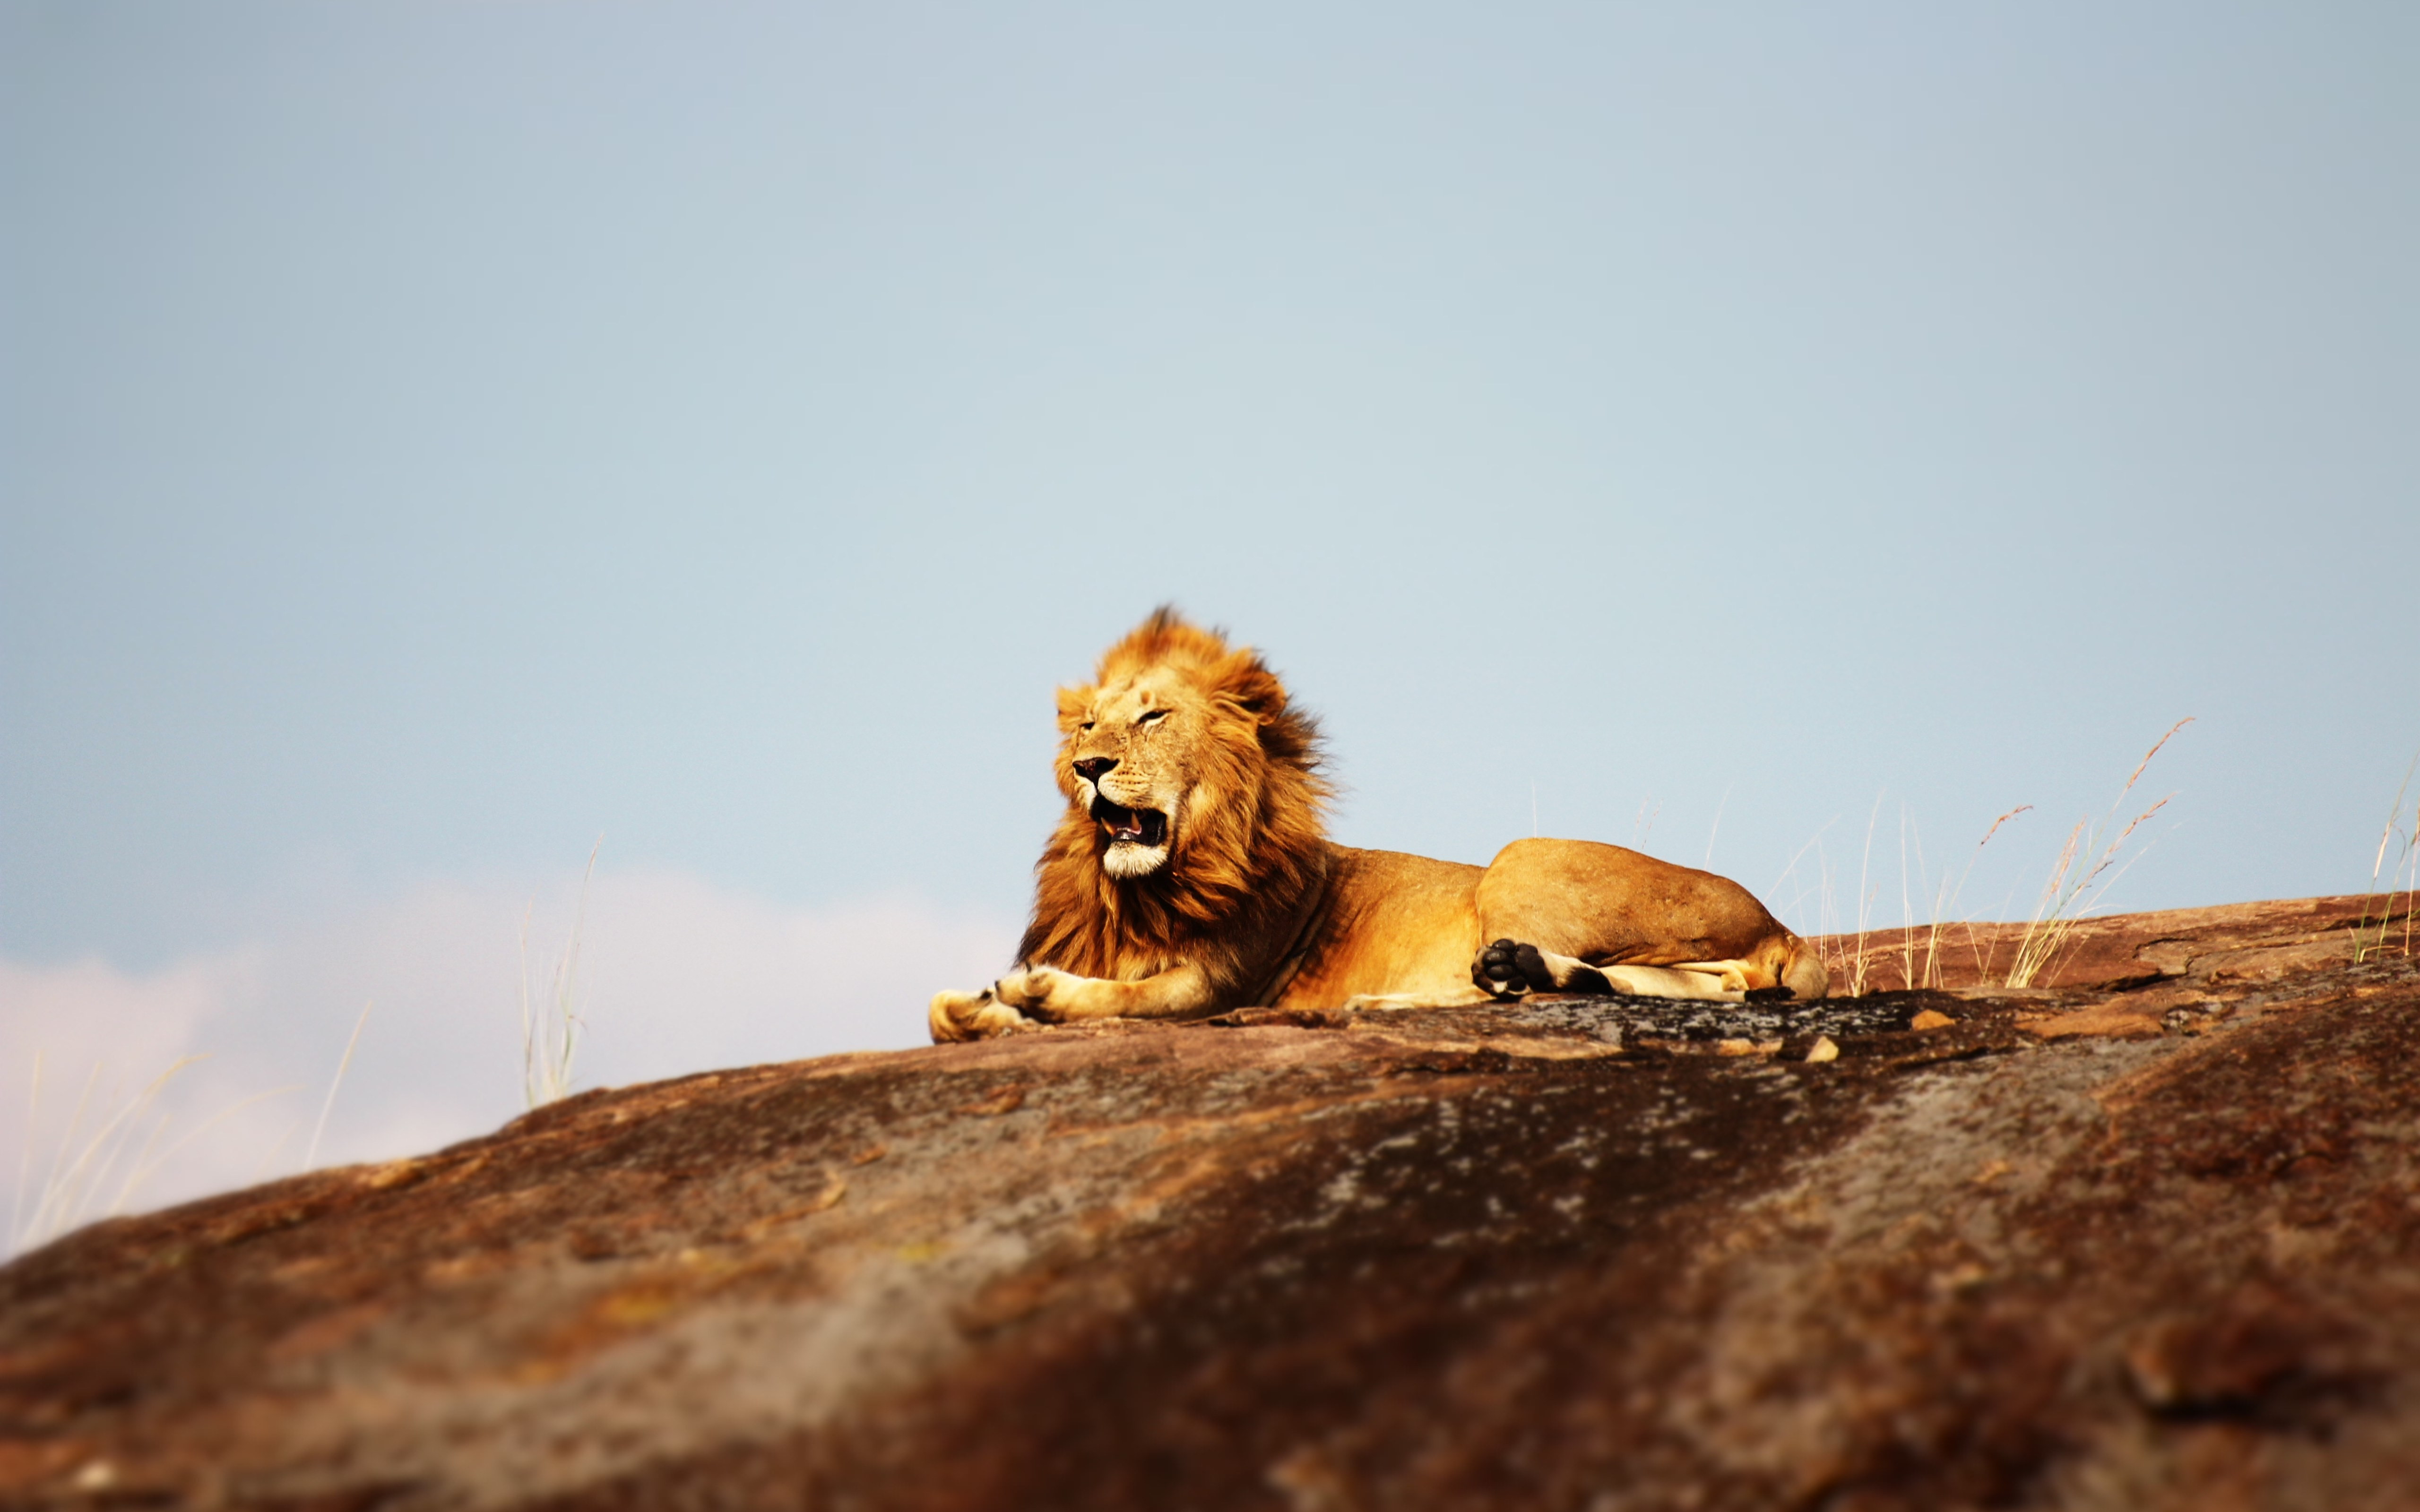 Lion in Serengeti National Park wallpaper 5120x3200